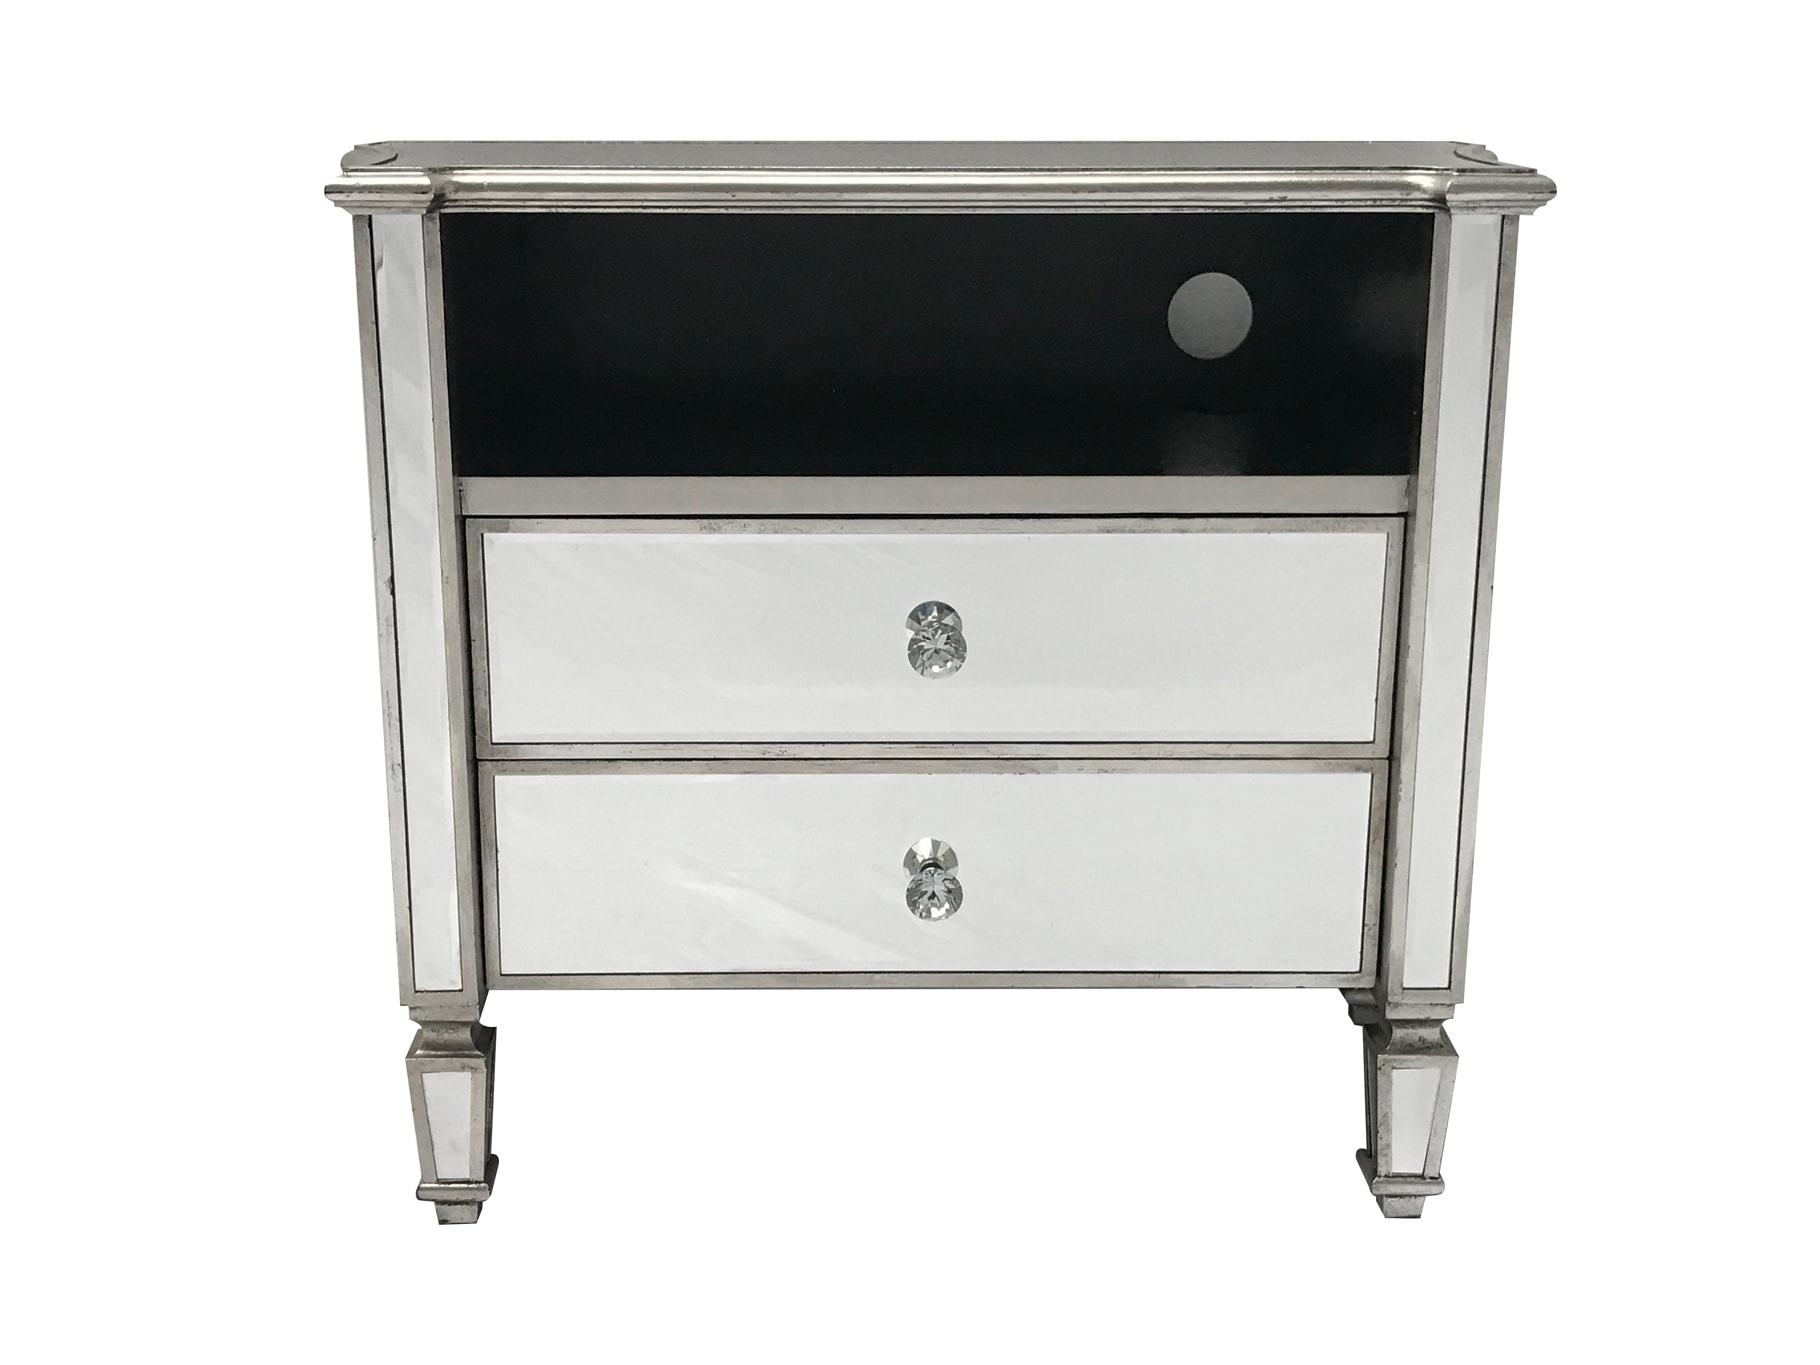 Glass media cabinet with two drawers, front view.